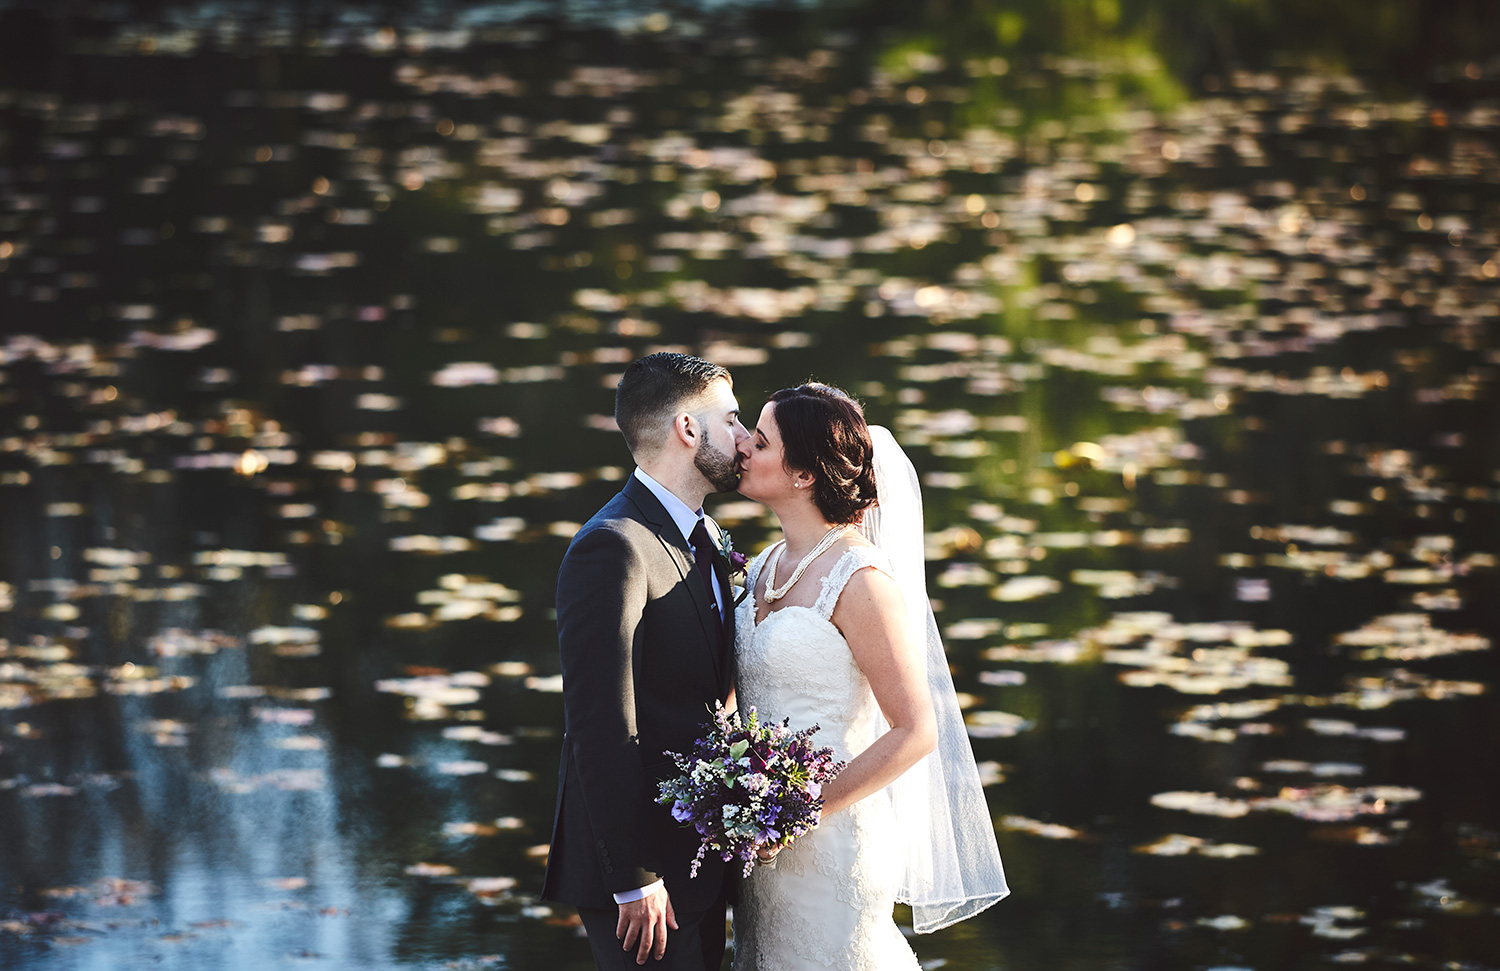 161119_ArrowParkLake&LodgeWedding_By_BriJohnsonWeddings_0089.jpg